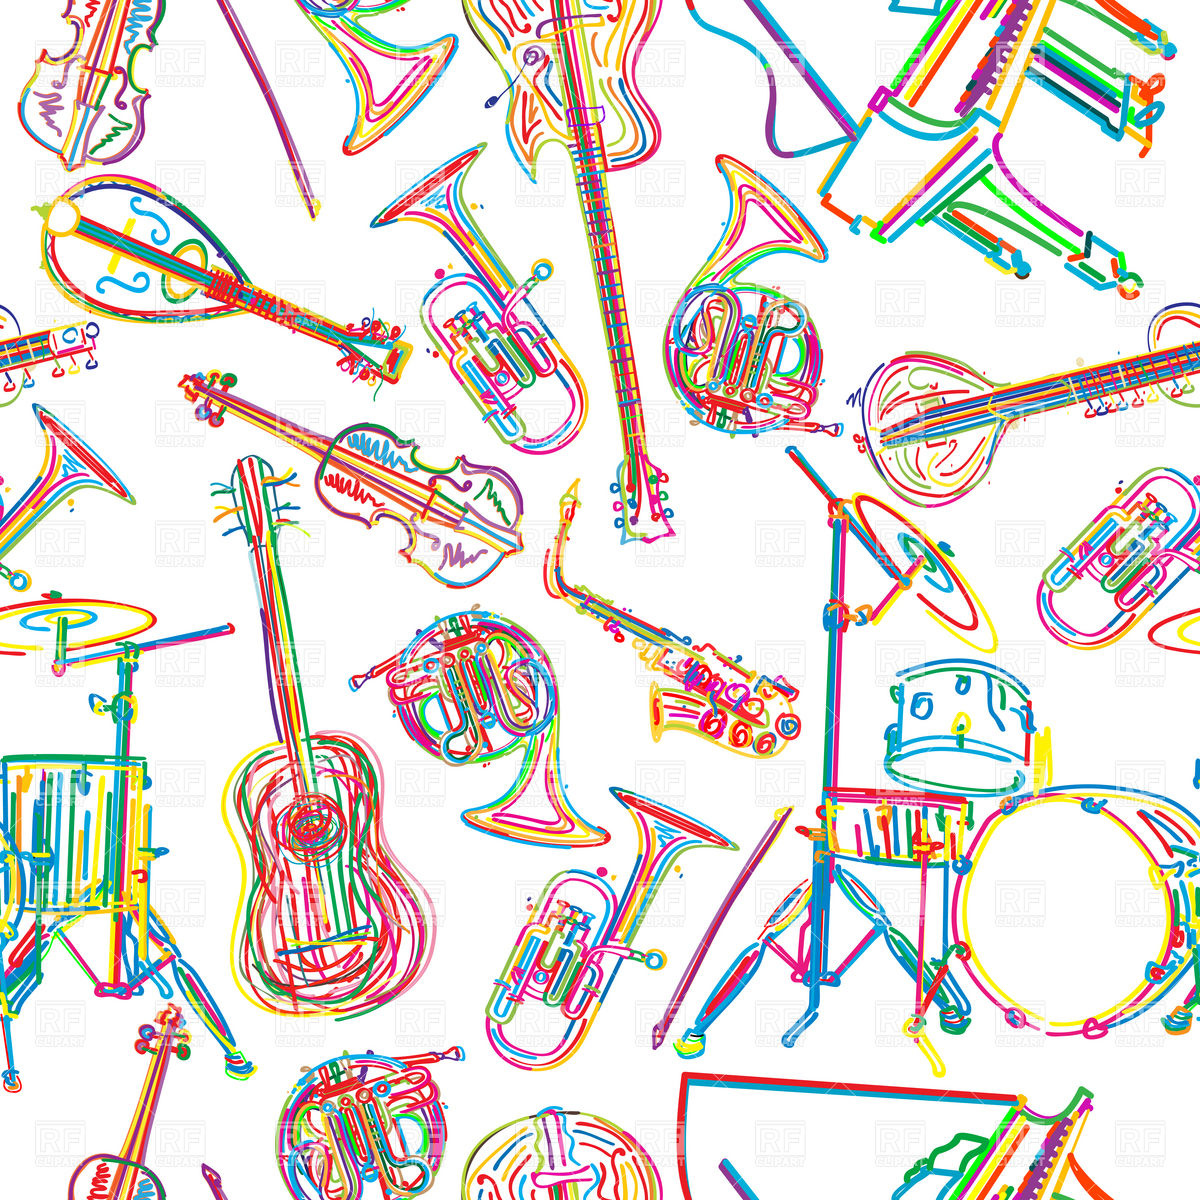 1200x1200 Seamless Background With Stylized Musical Instruments Vector Image